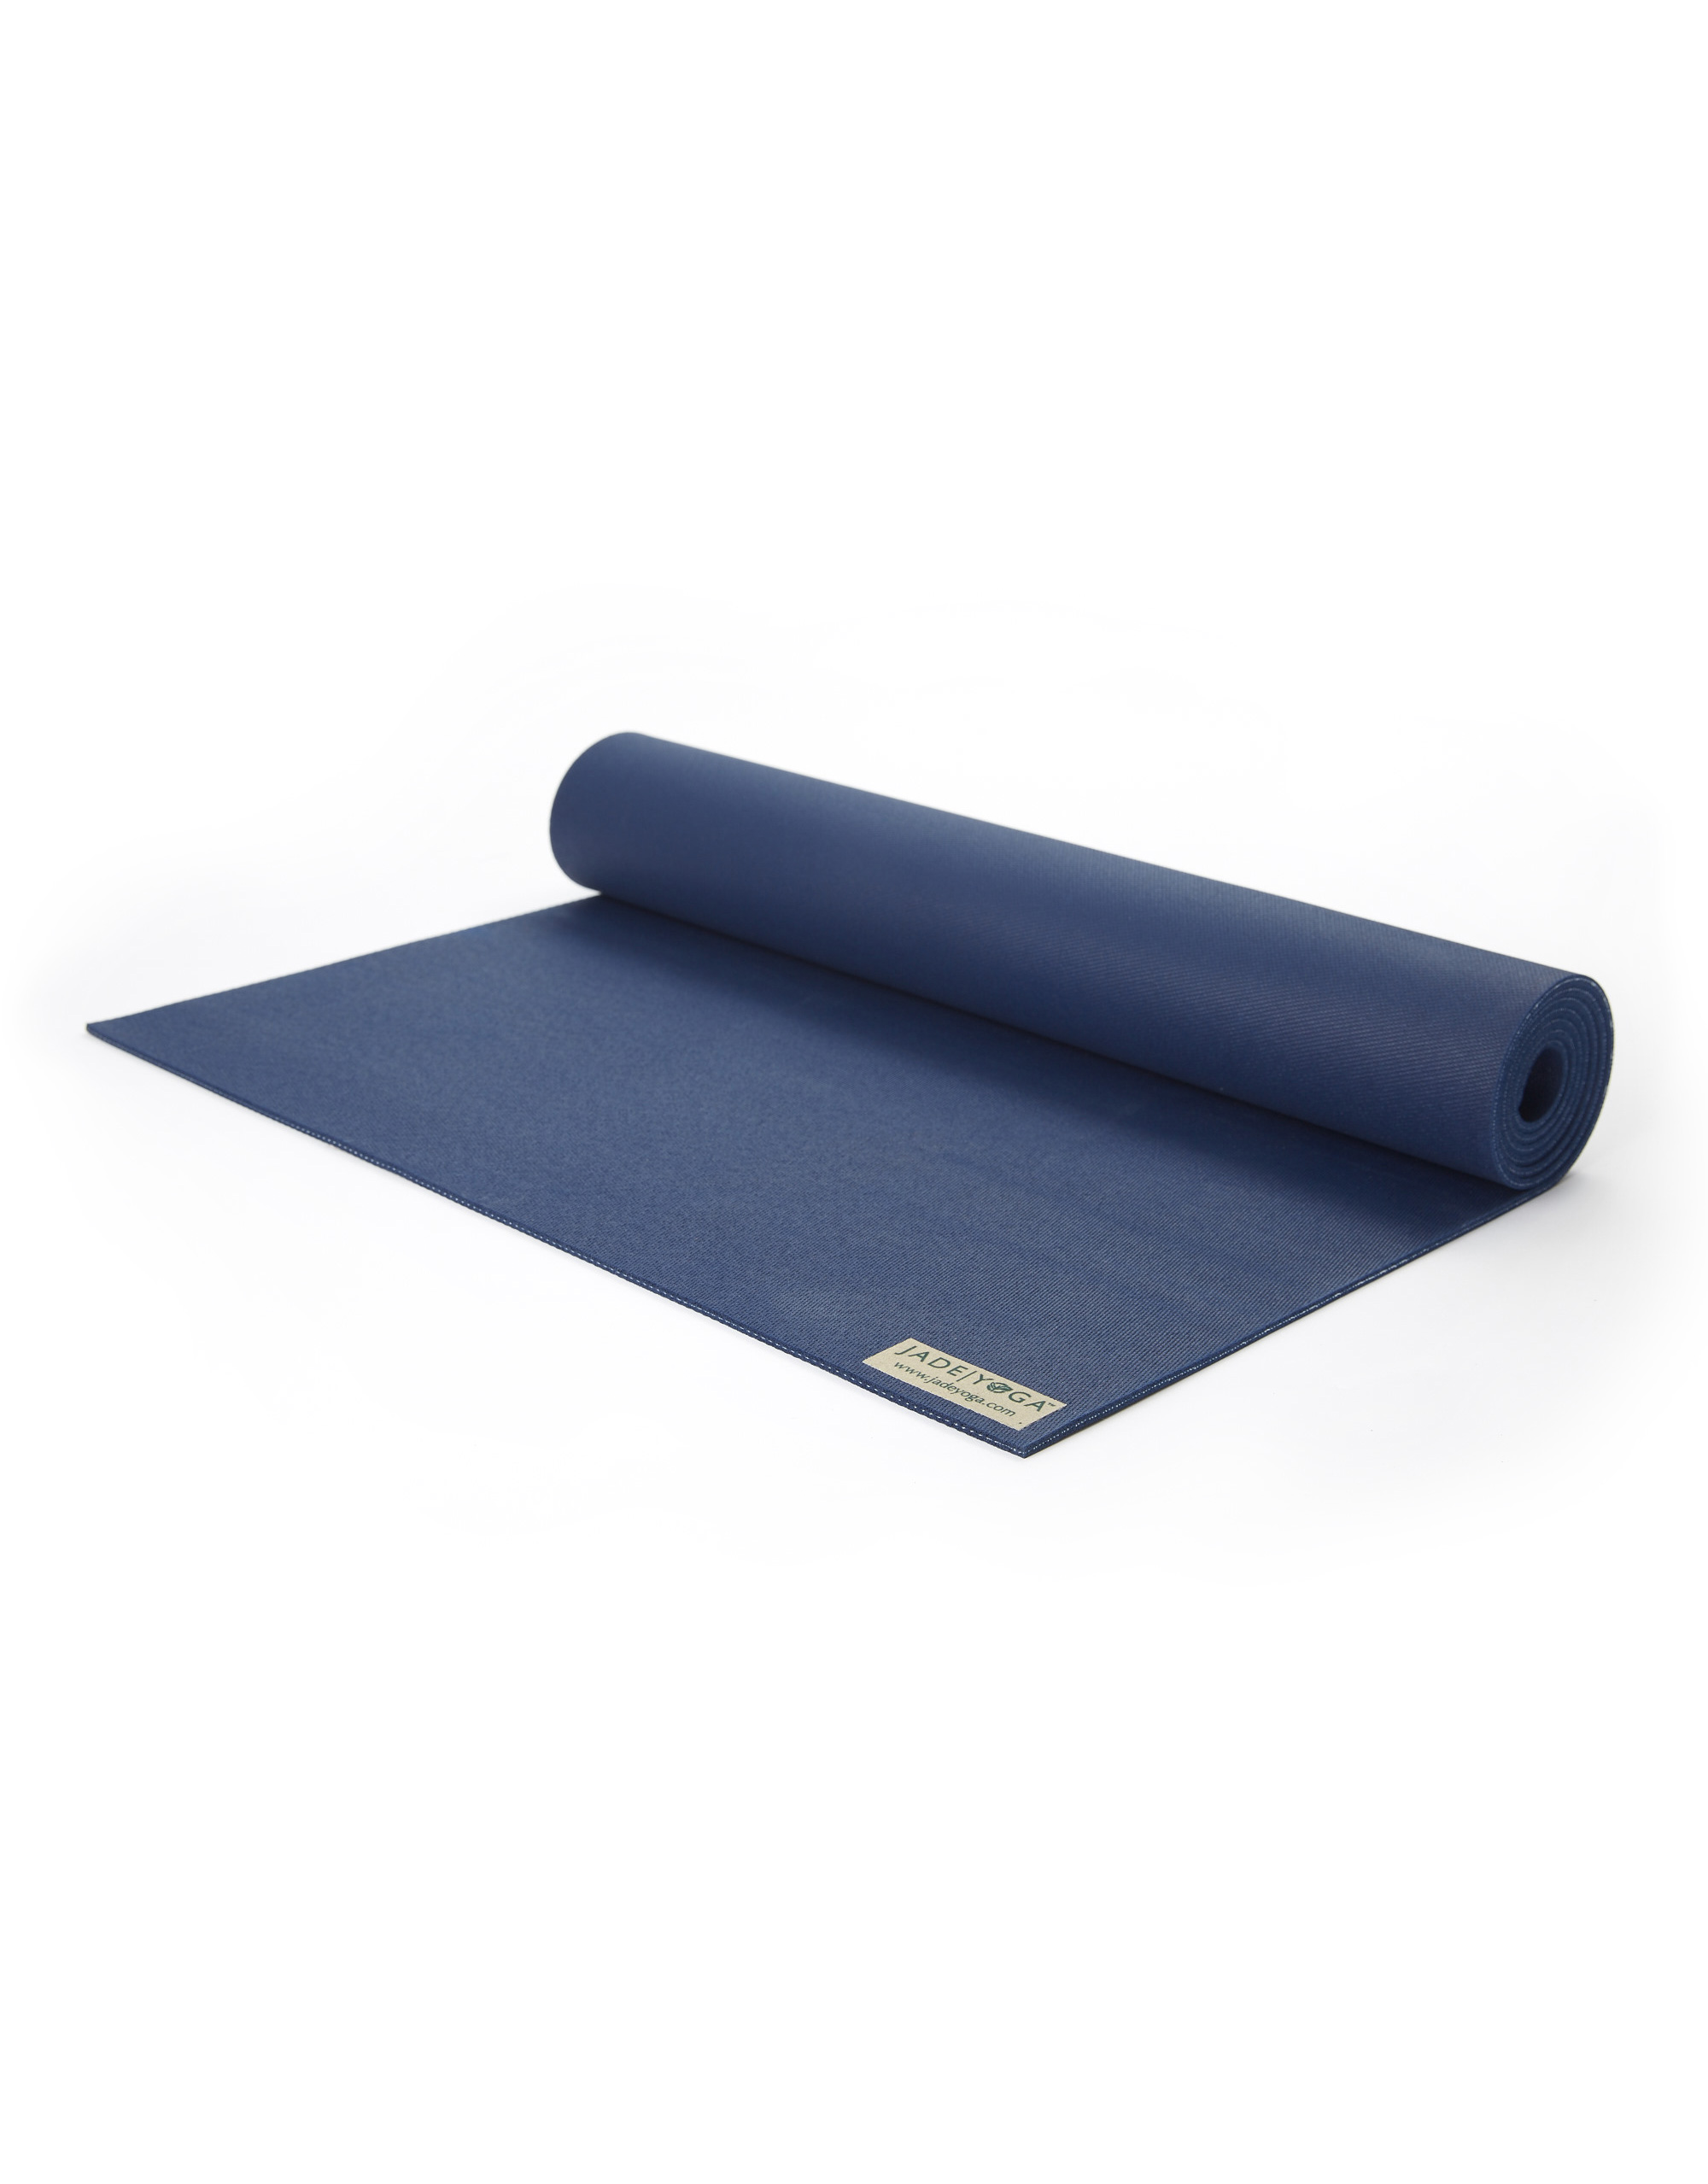 mats friendly jade best jadeyoga the cover yoga mat calendar gear eco